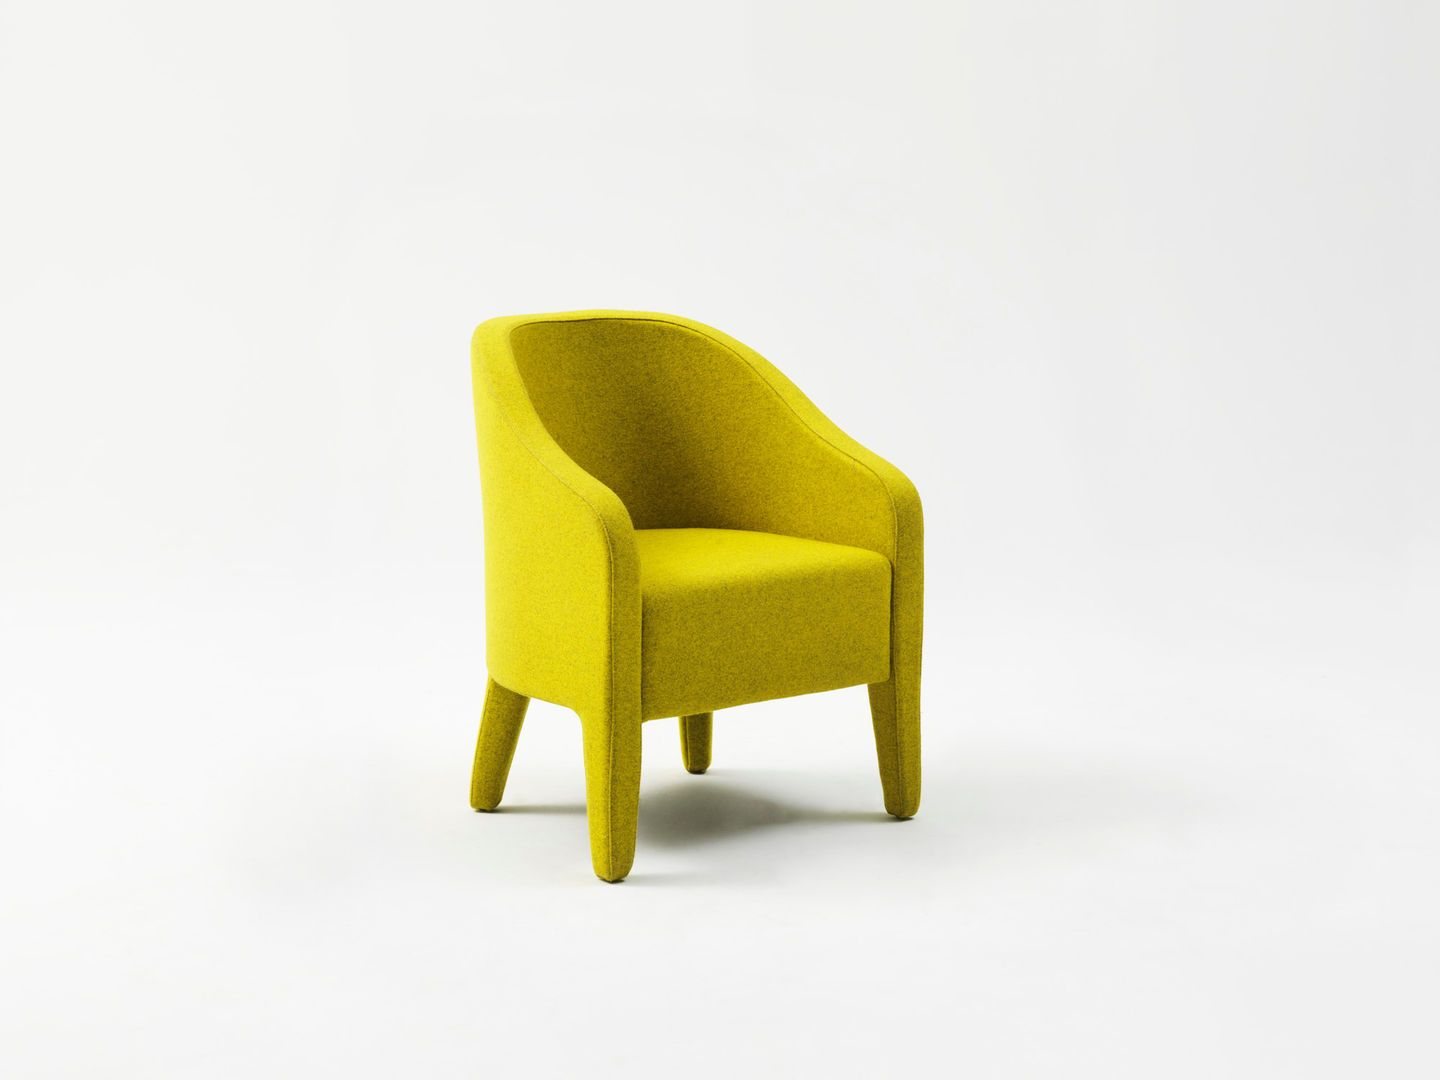 Nub Armchair by ESO. Available from Stylecraft.com.au